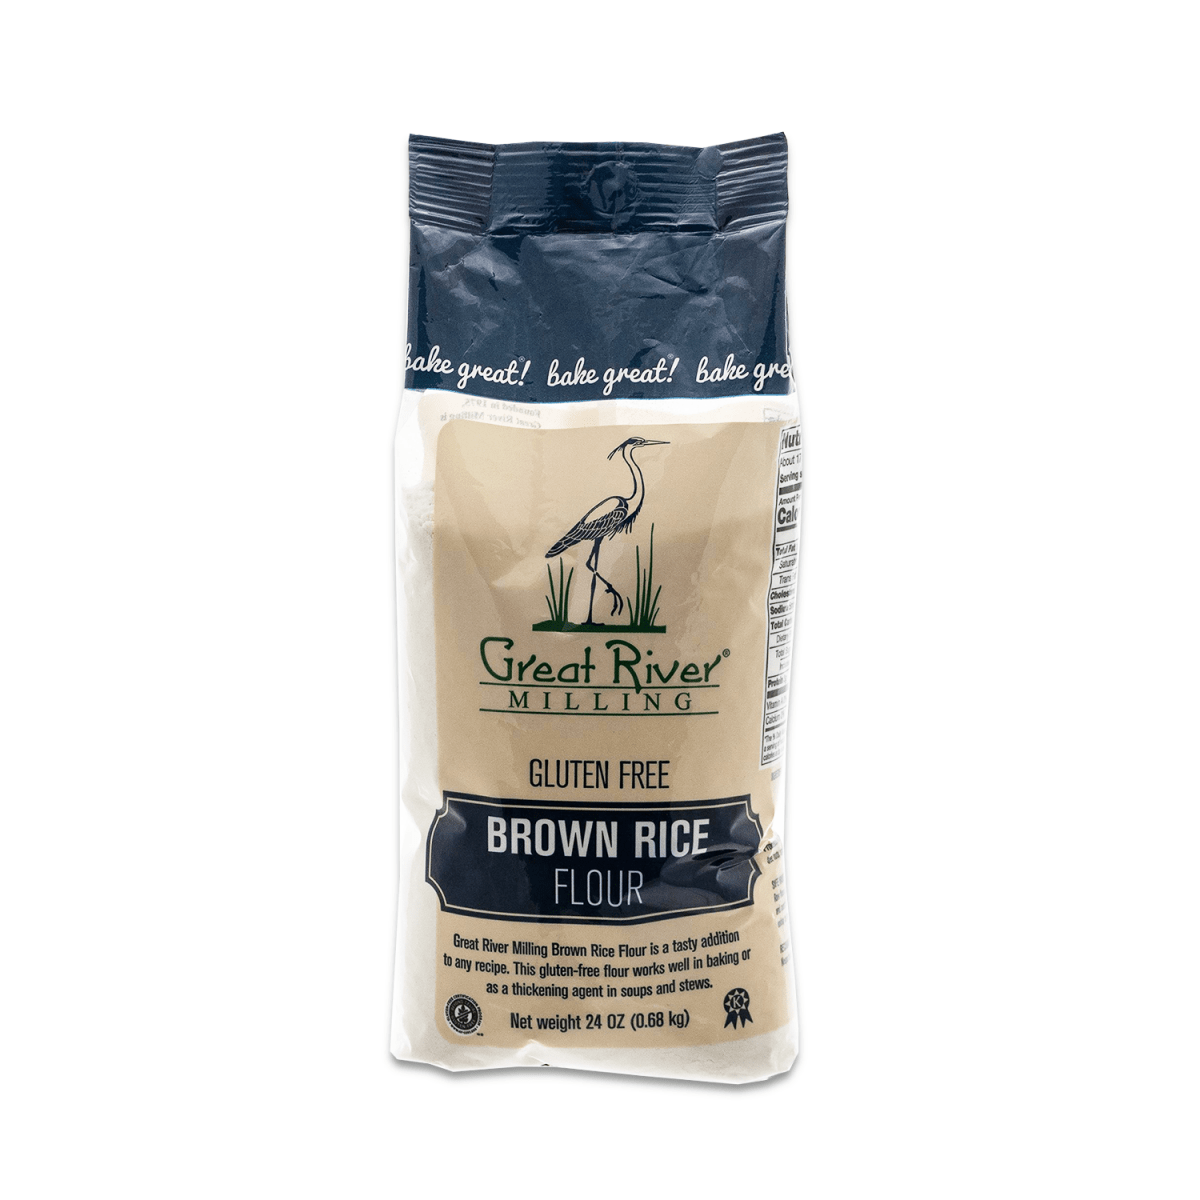 great river milling brown rice flour 24oz case open